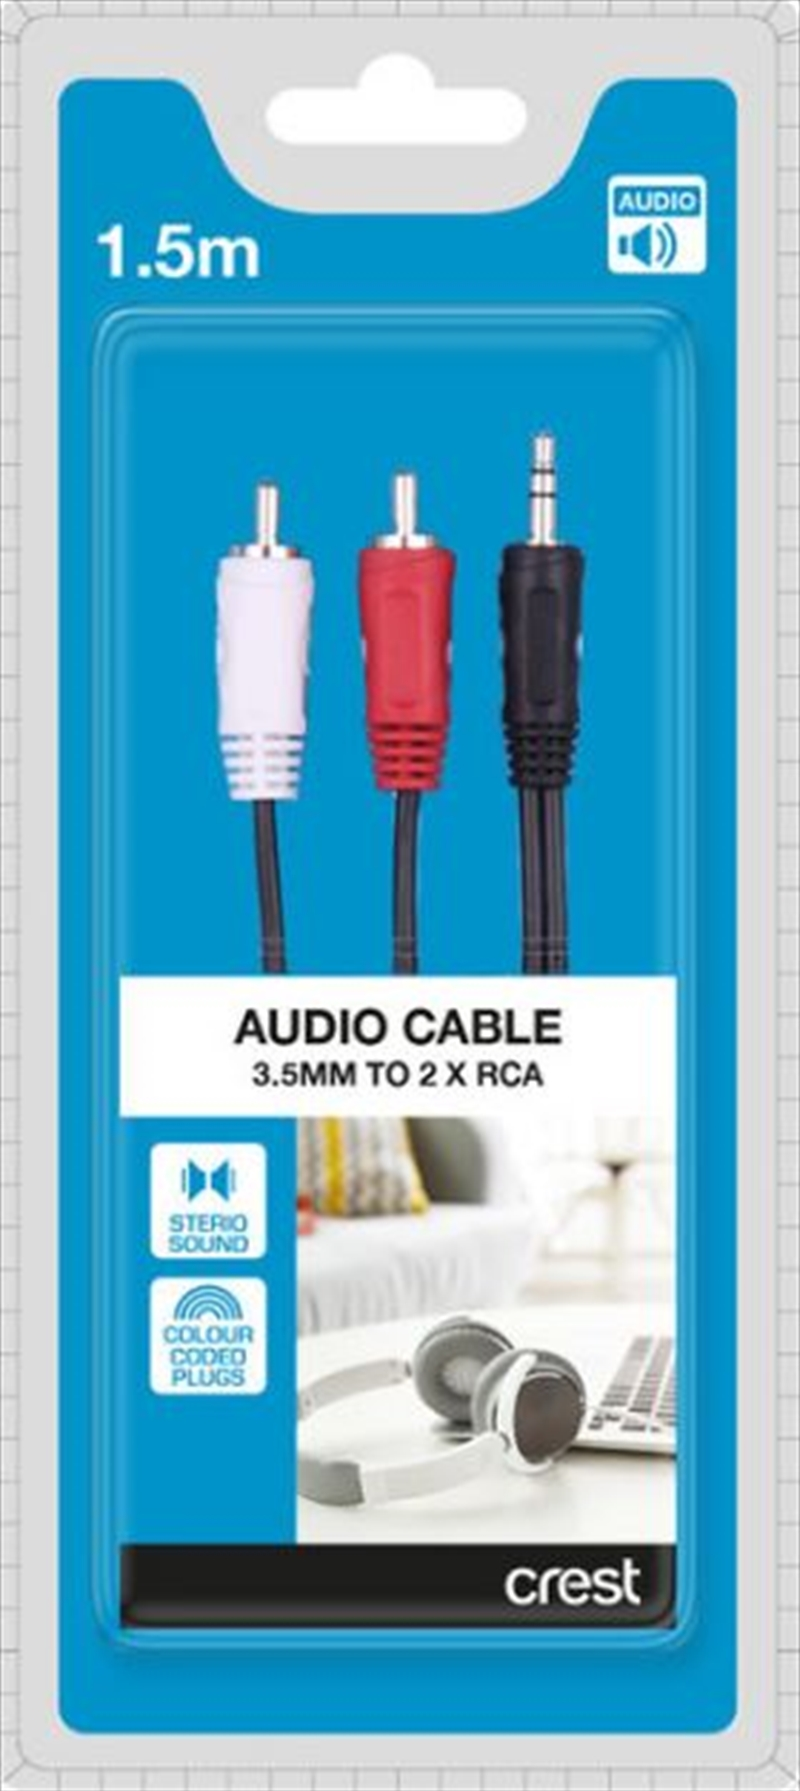 3.5mm to 2 x RCA Audio Cable - 1.5M | Accessories